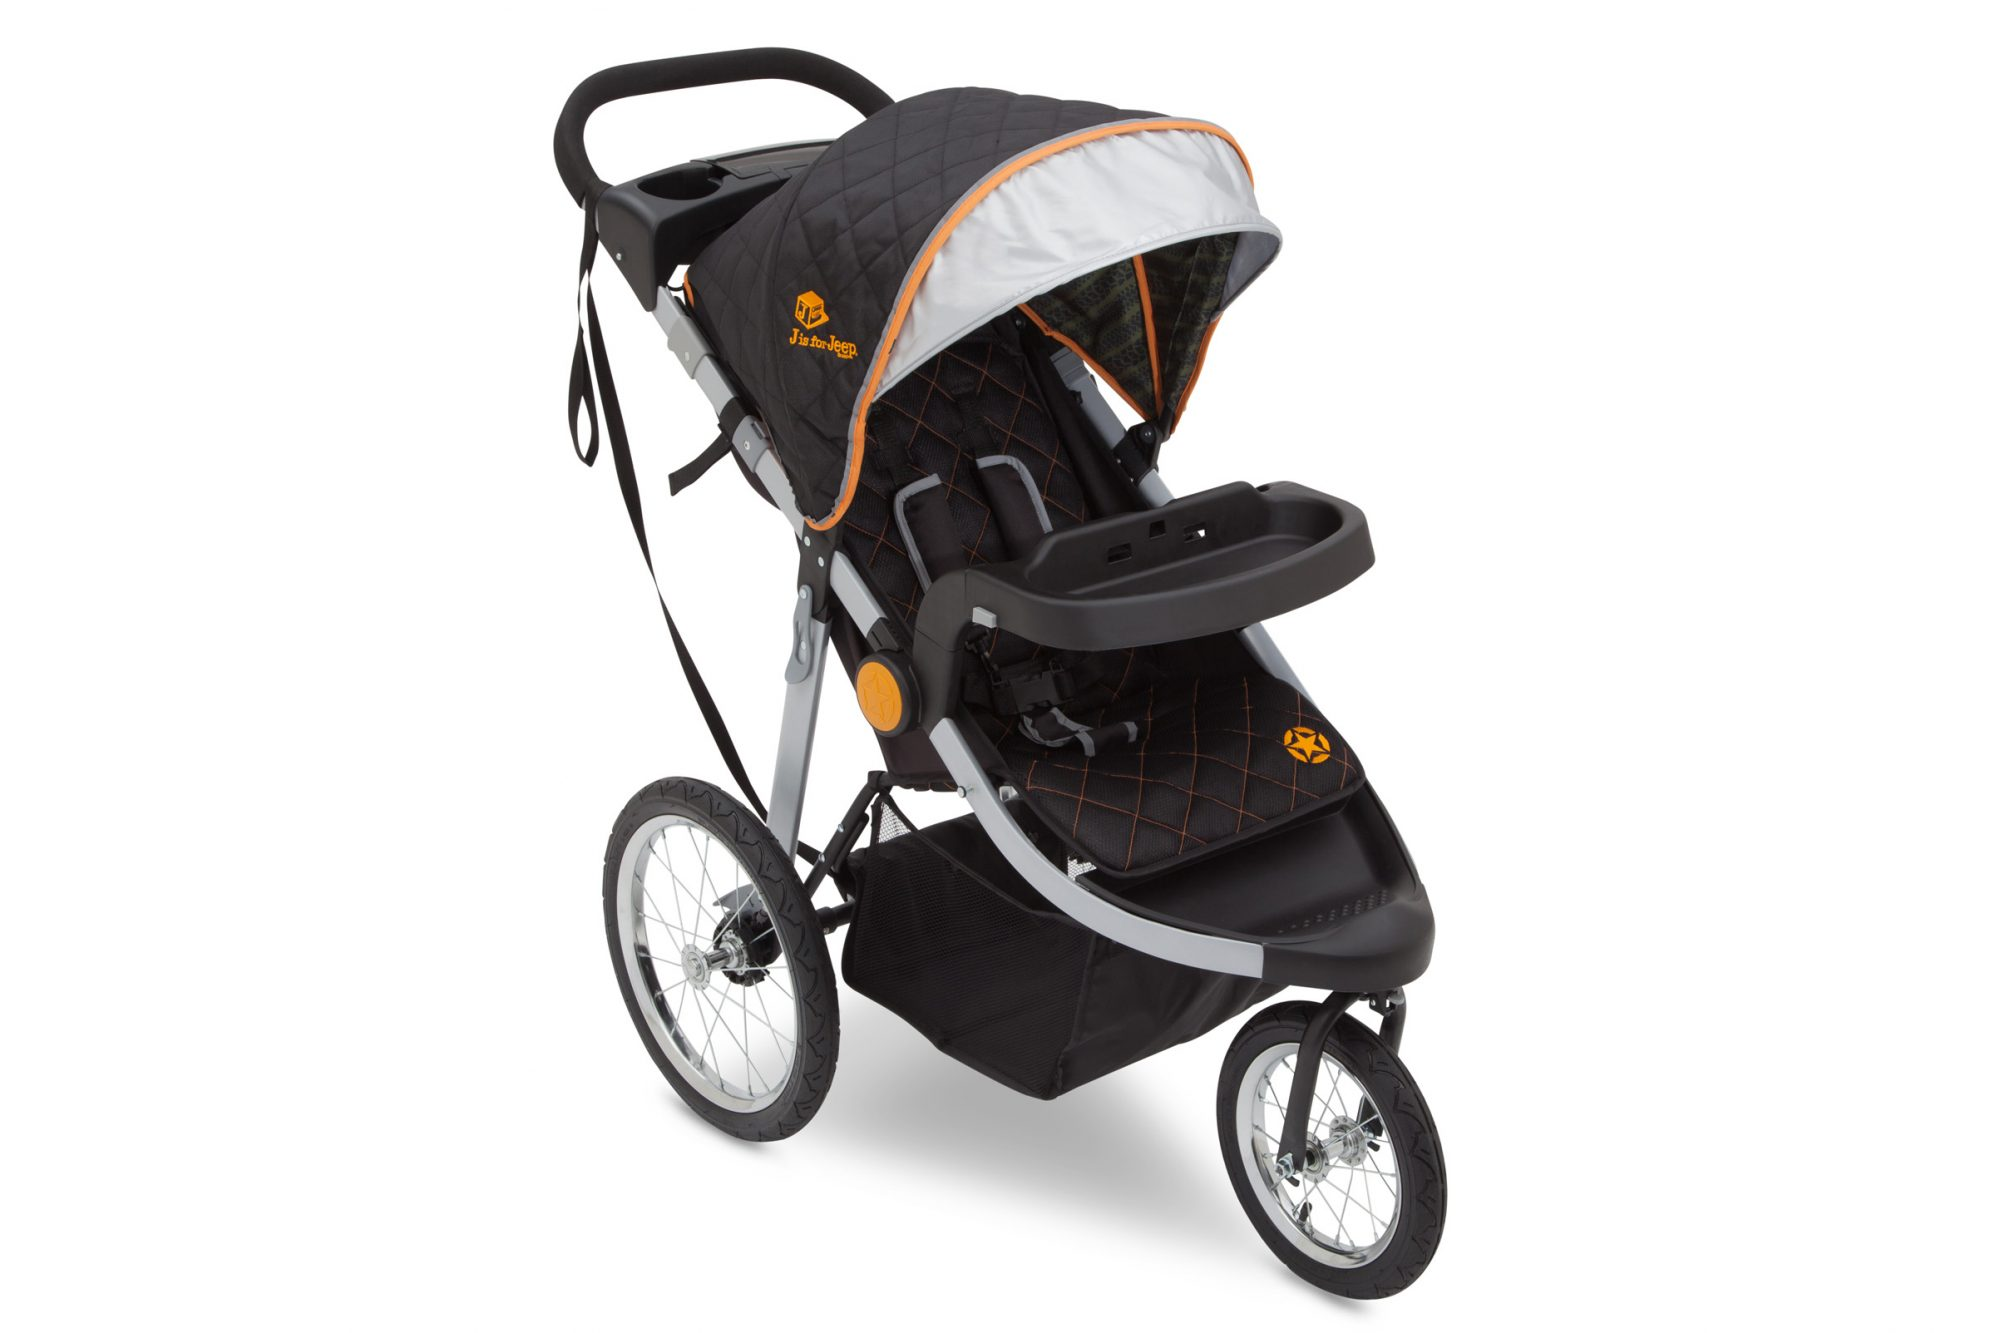 A Lot of These Popular Strollers Just Got Recalled Because Kids Could Fall Out